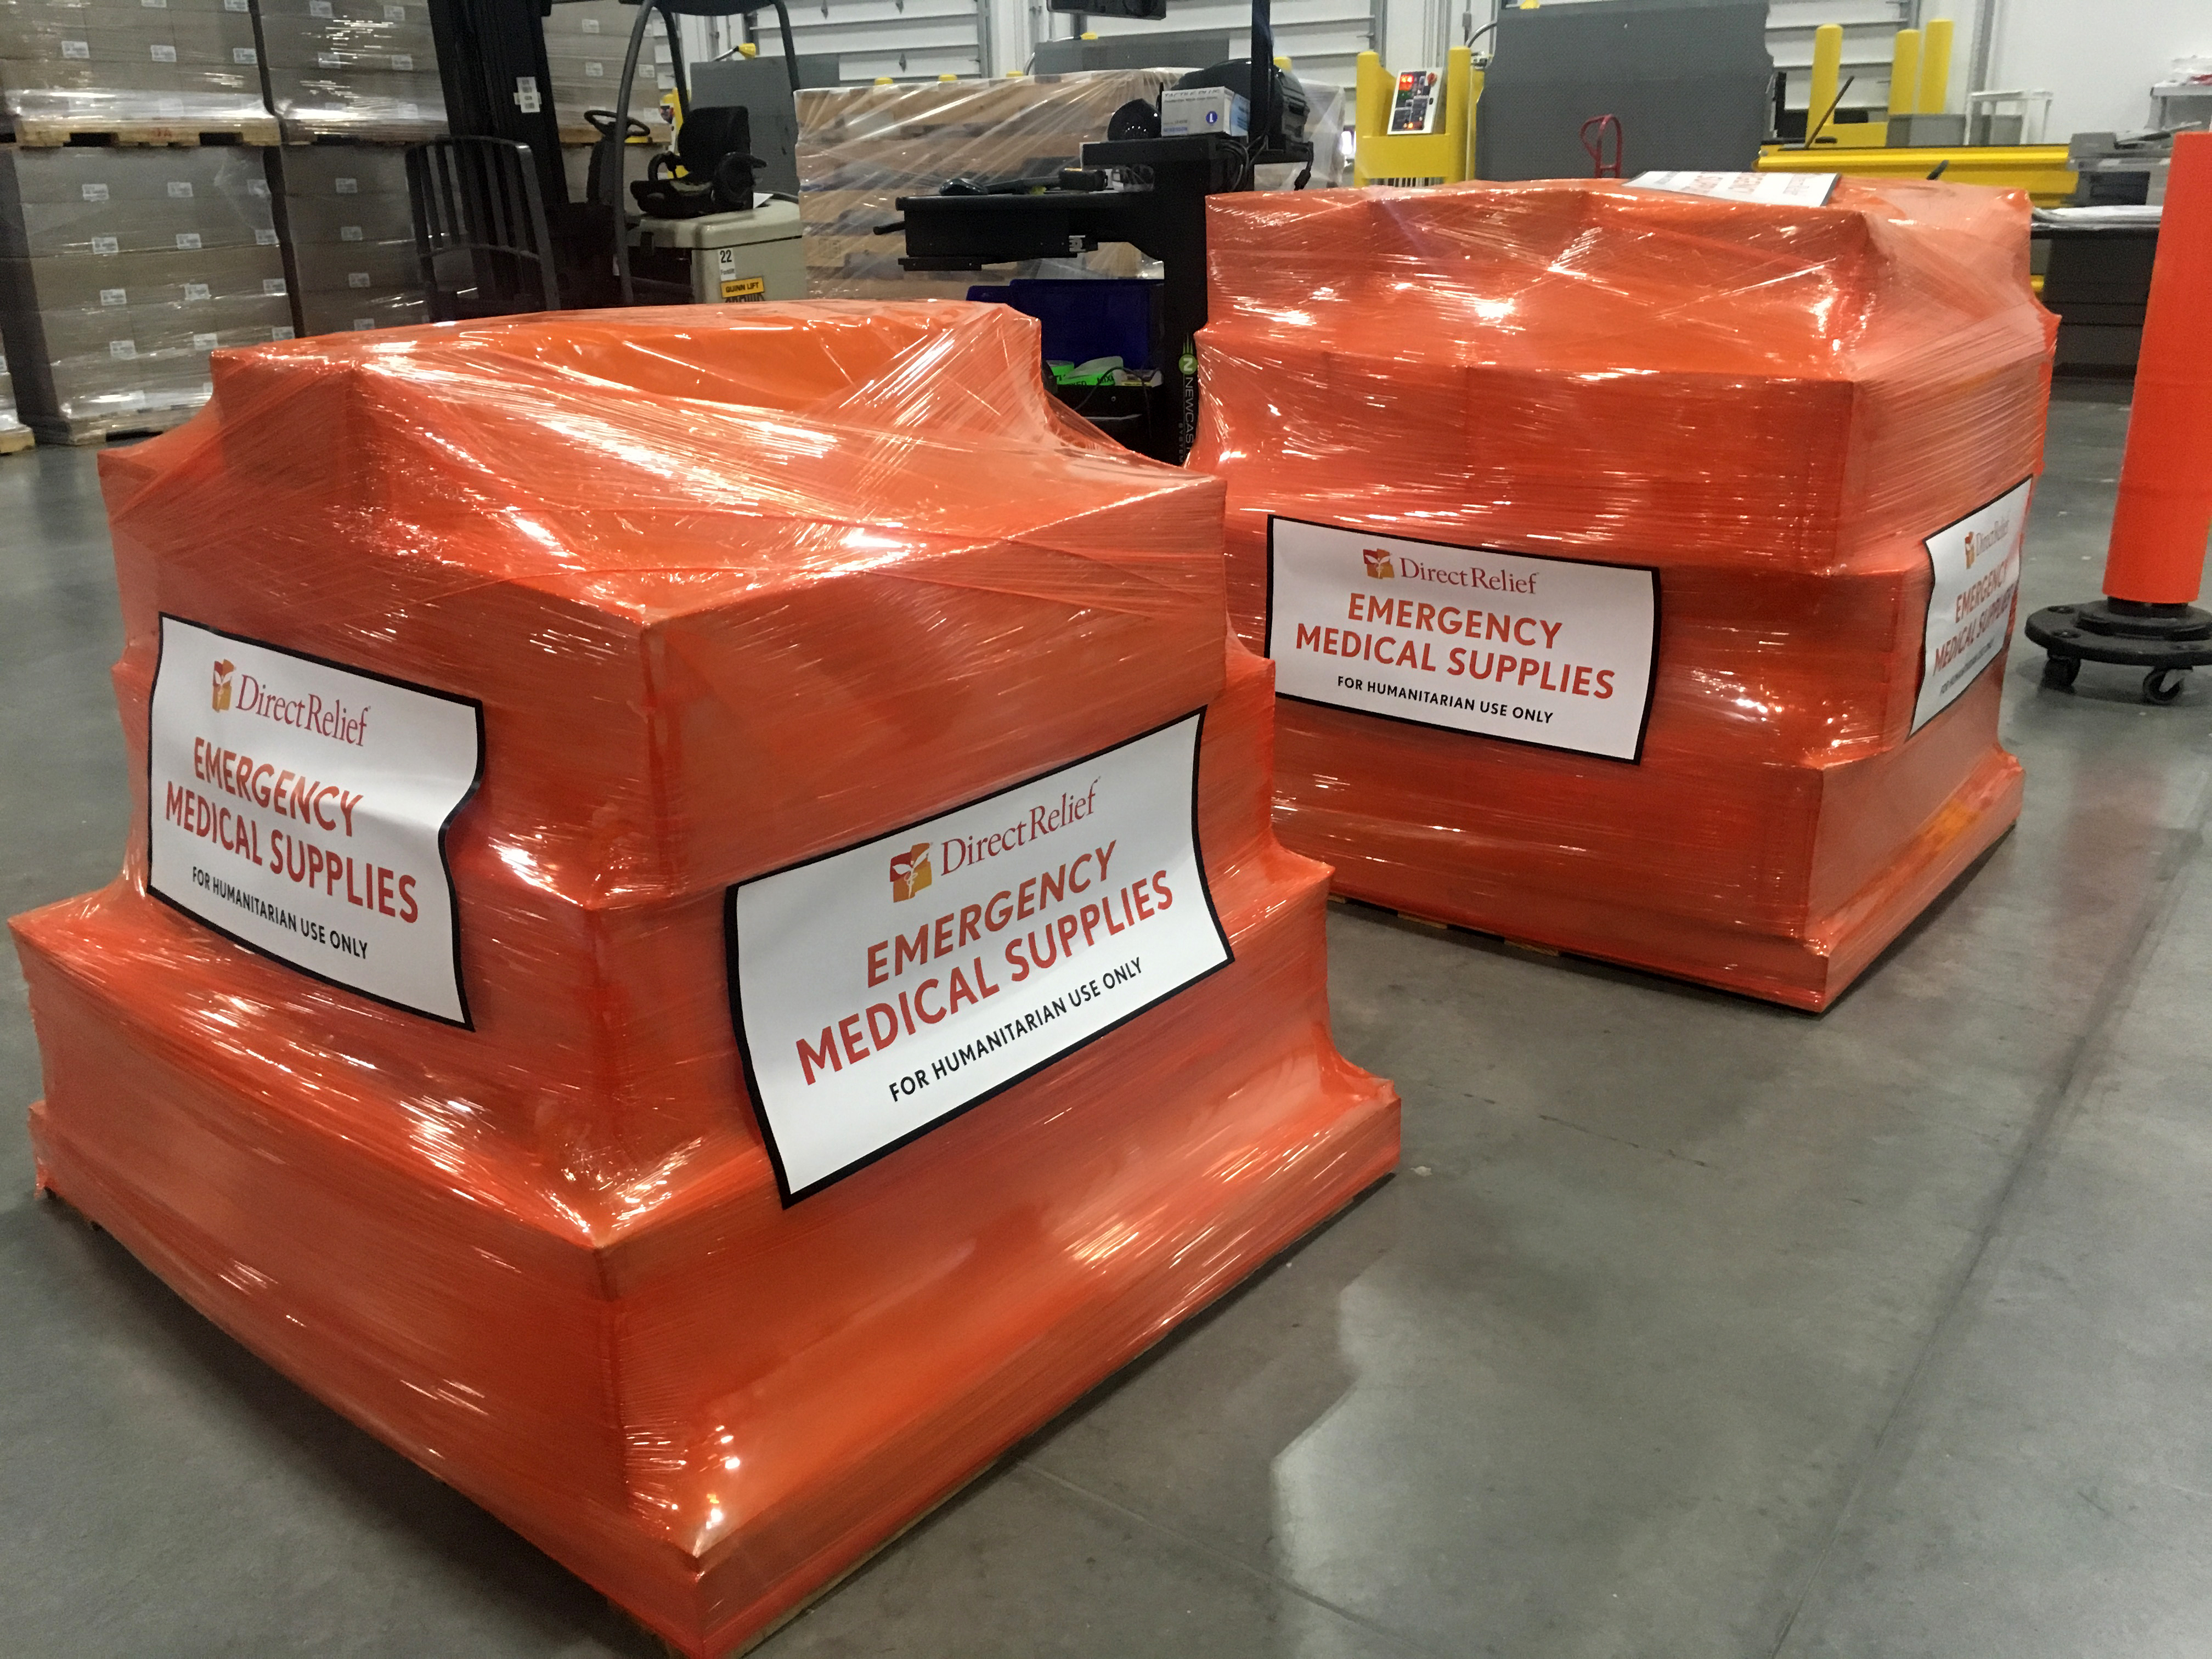 A Direct Relief shipment is staged on June 19 at the organization's California headquarters before being shipped to Guatemalan communities impacted by the Fuego Volcano. Many people are still displaced and require medical care. The shipment included Emergency Medical Backpacks as well as five rugged tents to be used as health stations for evacuees. (Cydney Justman/Direct Relief)